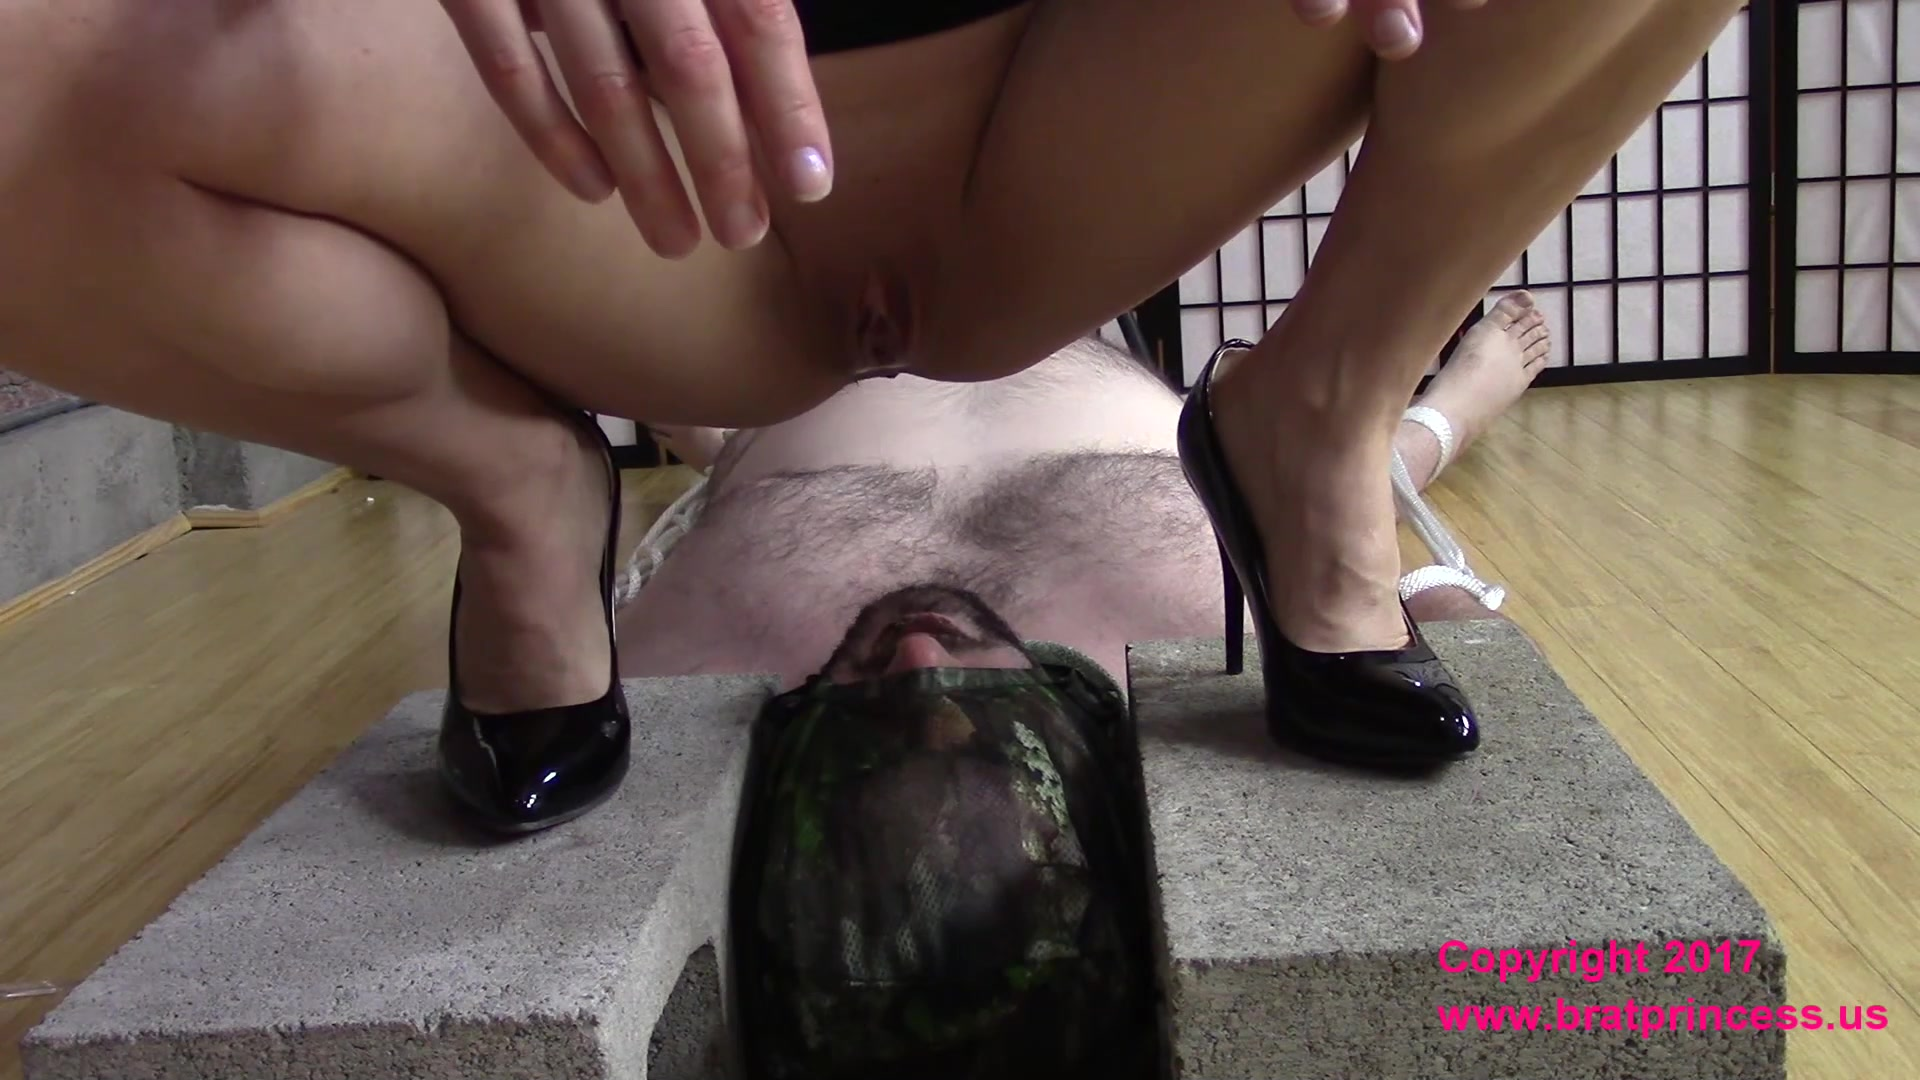 Brat_Princess_-_Lola_-_Weekend_Full_Toilet_Slave__Day_1_of_3_.00001.jpg